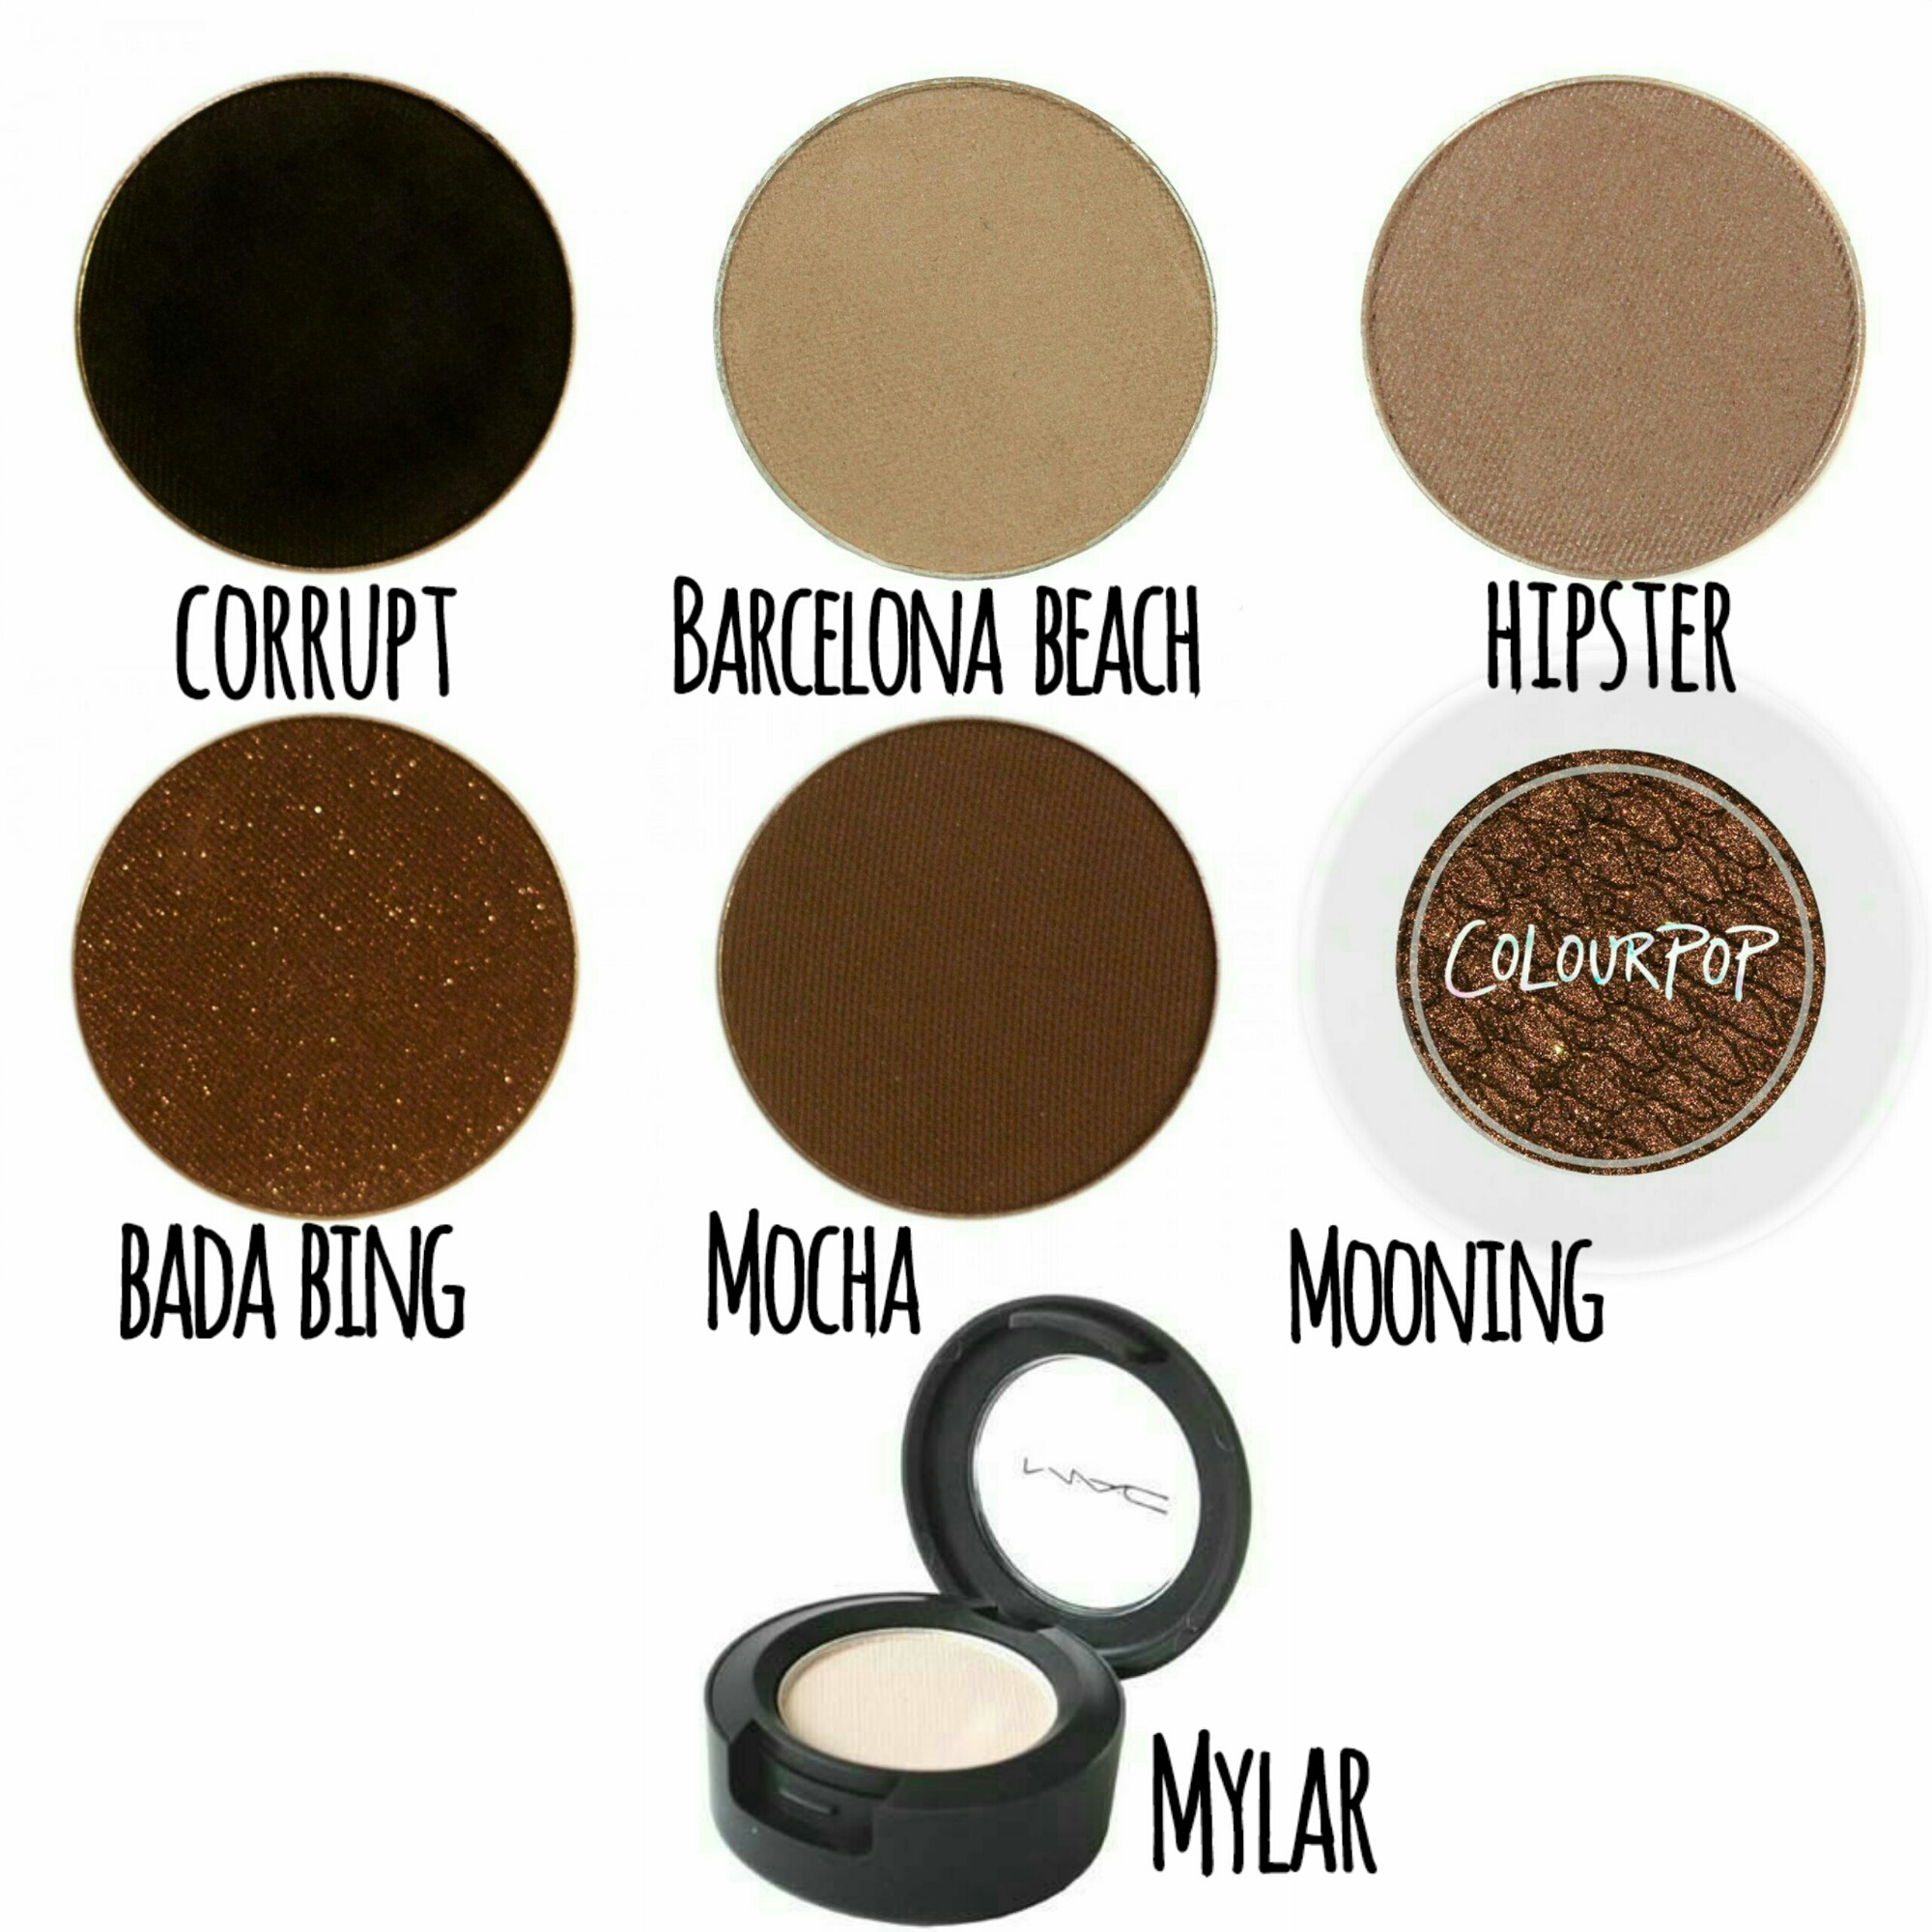 MakeupGeek Cosmetics Smokey Eye MakeupGeek Makeup Geek Mac Cosmetics Mylar ColourPop Cosmetics